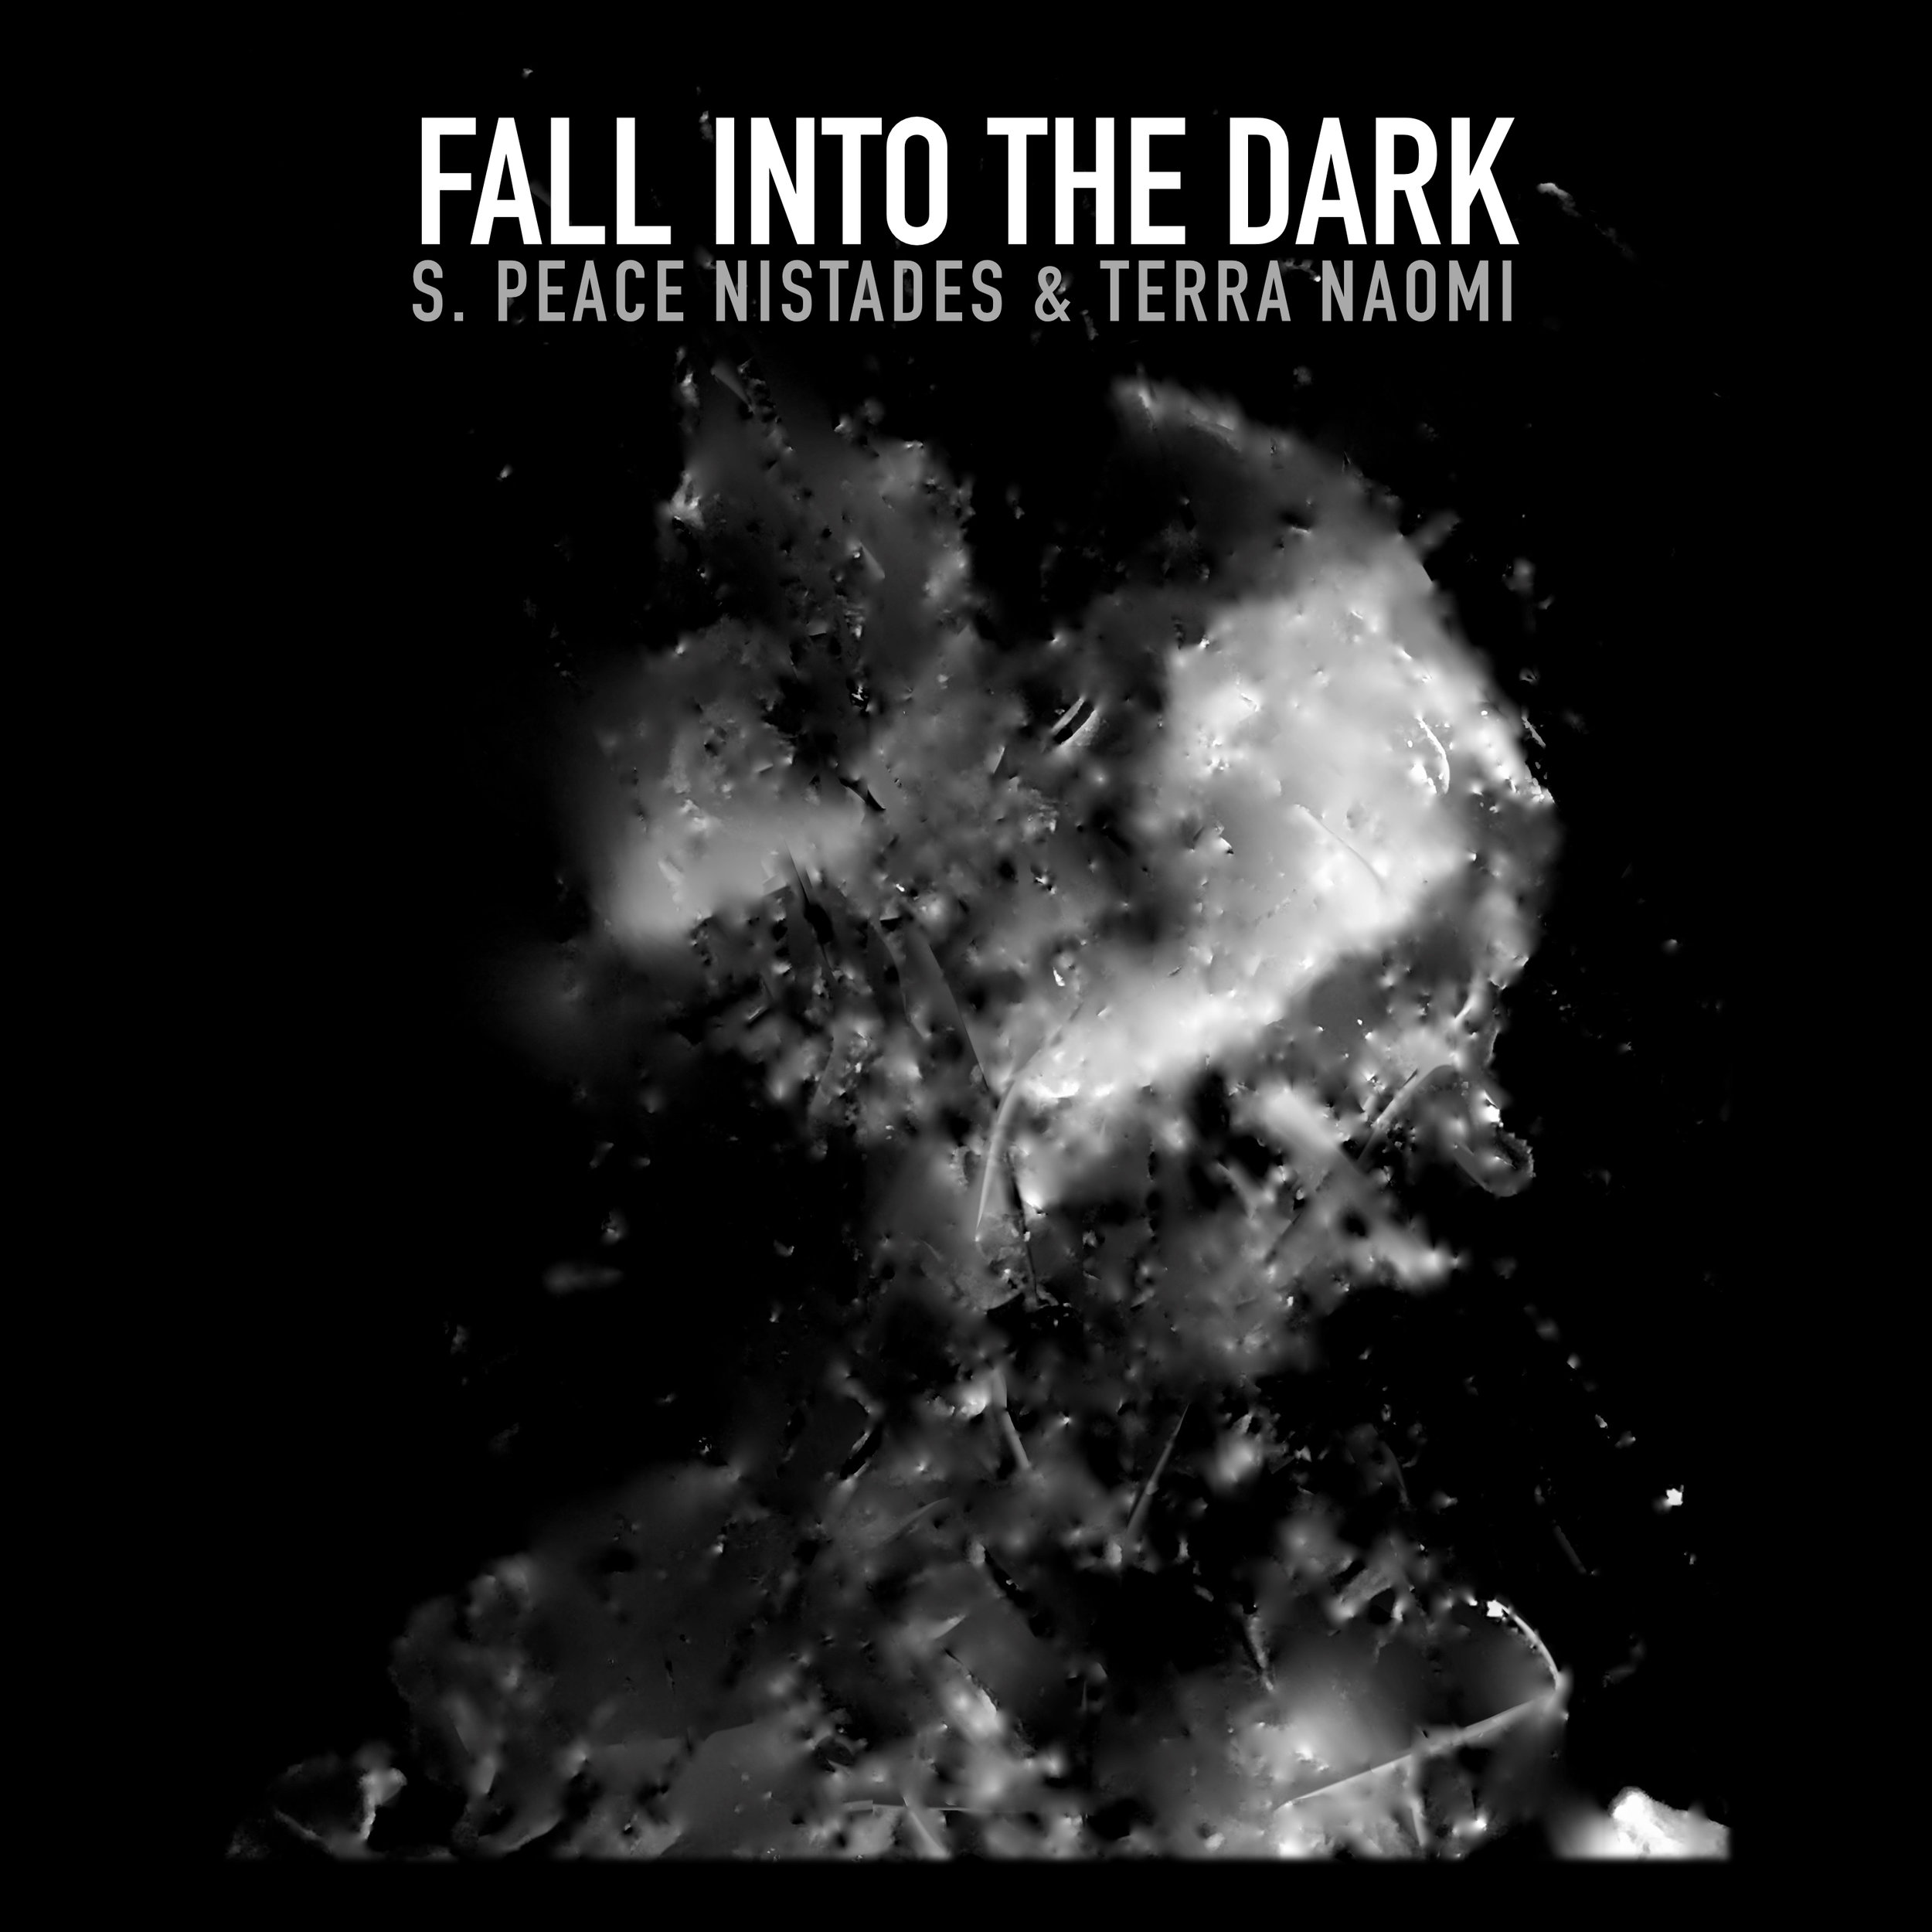 FALL INTO THE DARK Cover.jpg